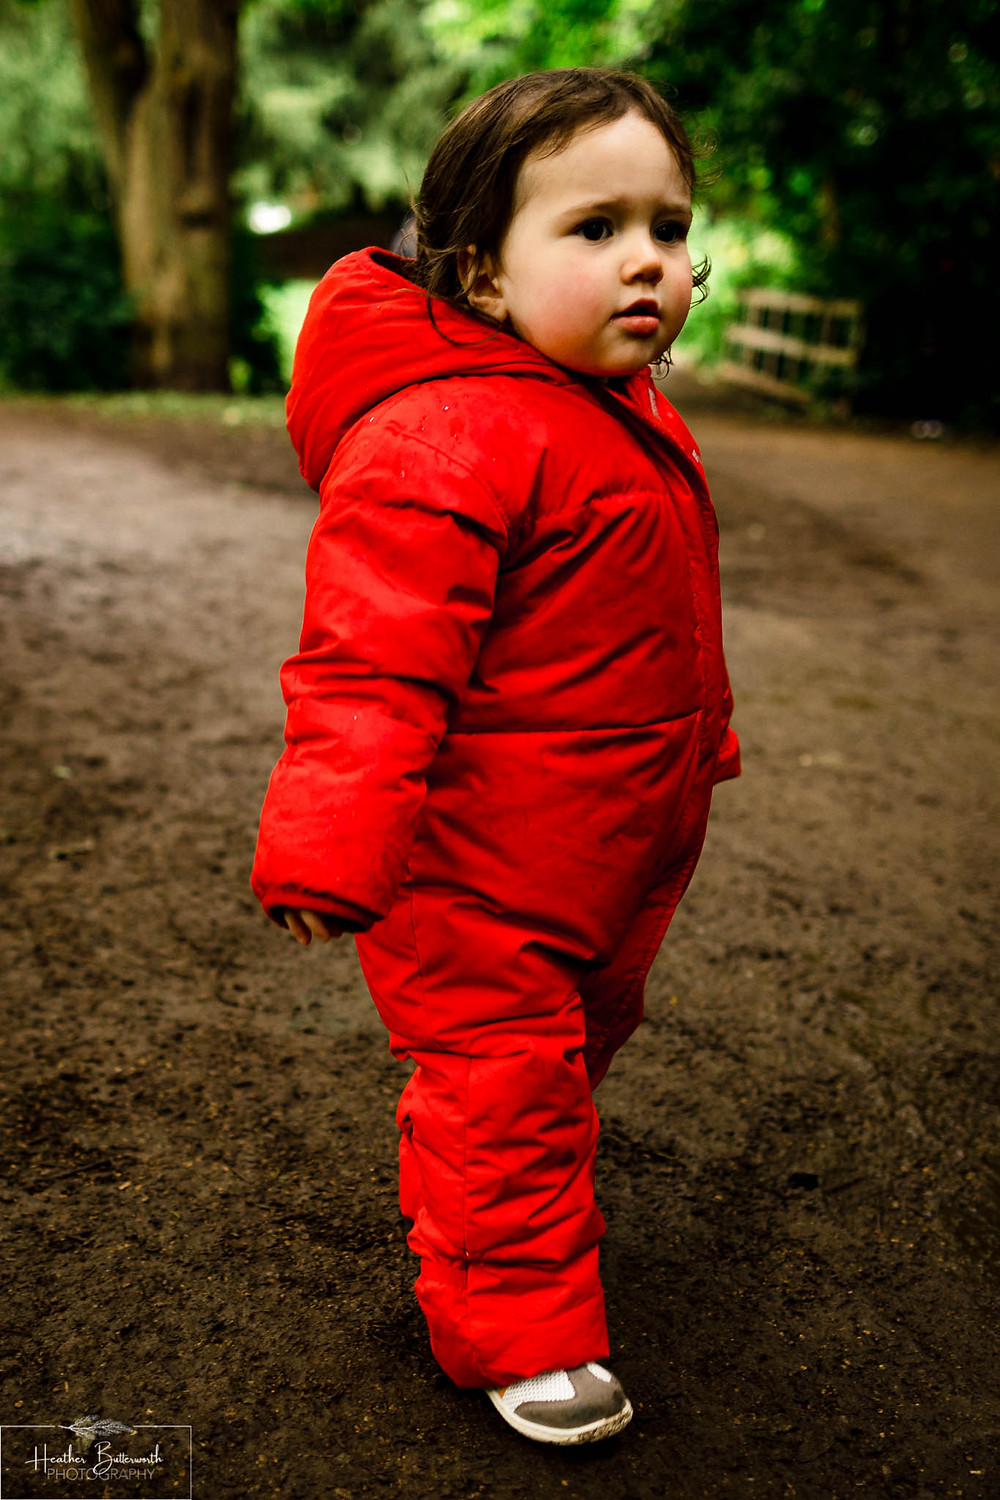 a girl playing in roundhay park woods after restrictions were slightly lifted after the COVID-19 lockdown in Leeds , Yorkshire in June 2020